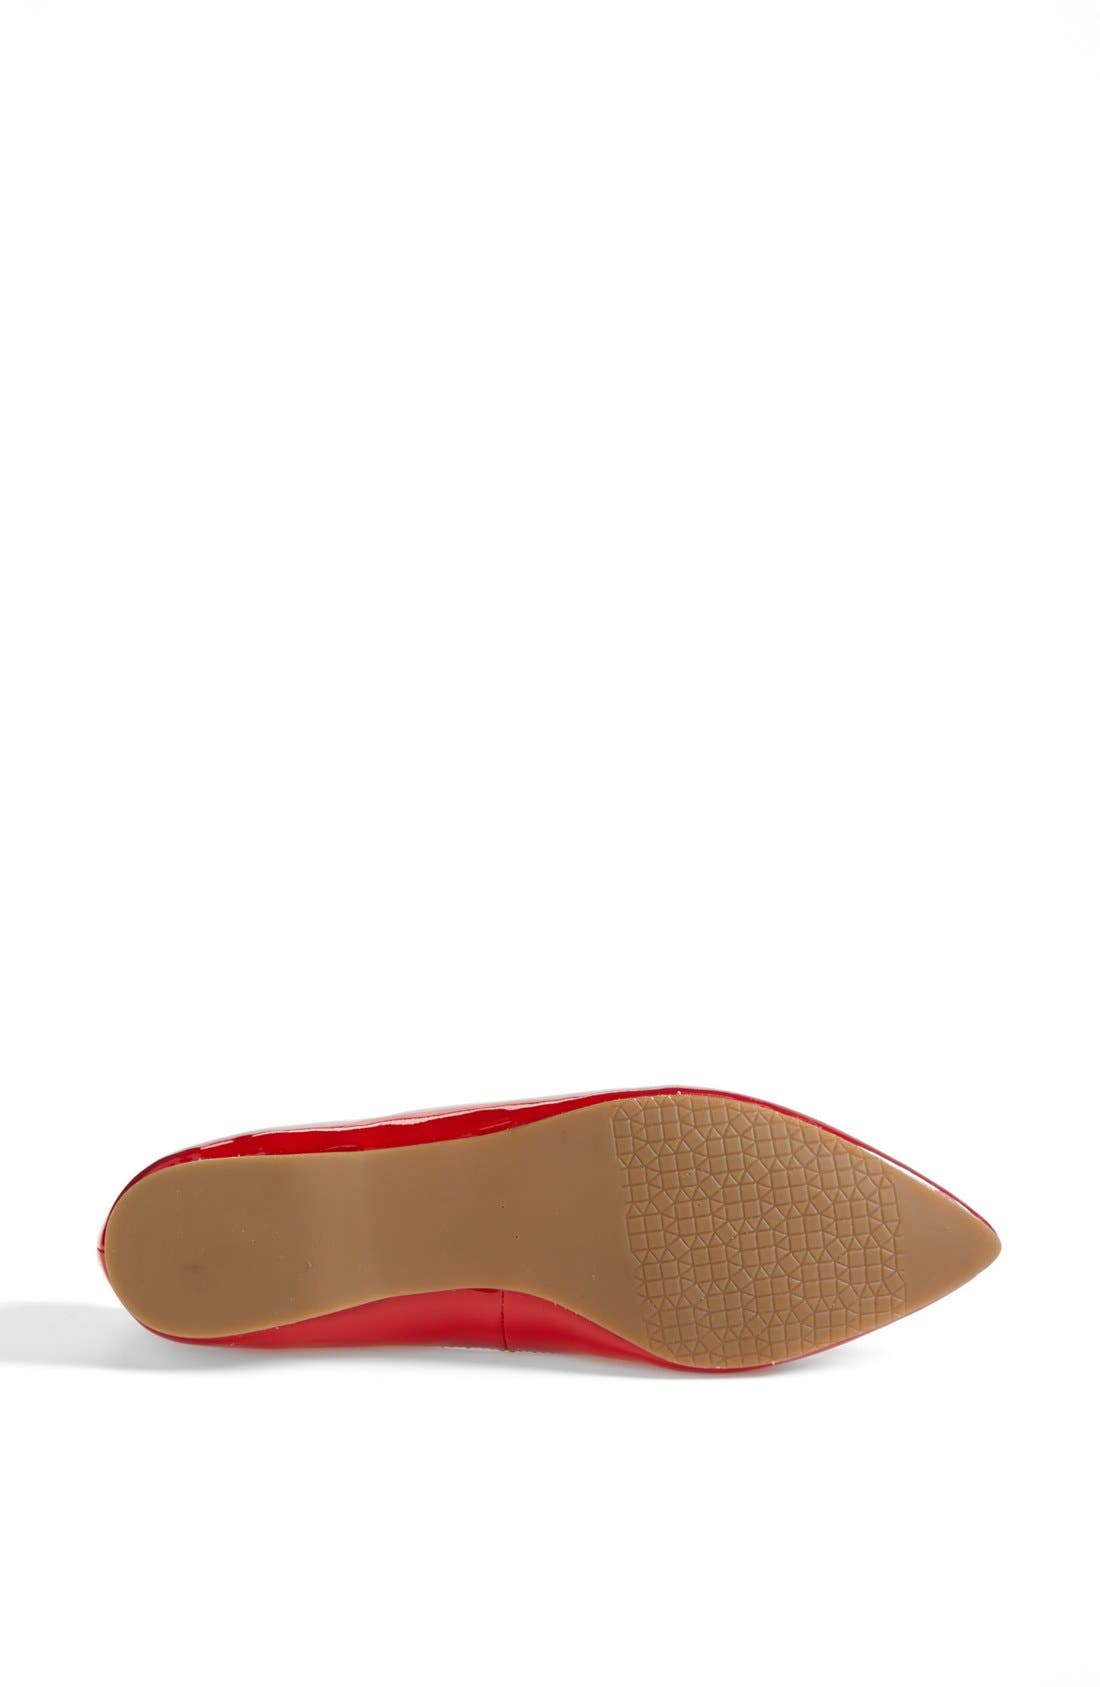 'Moveover' Pointy Toe Flat,                             Alternate thumbnail 21, color,